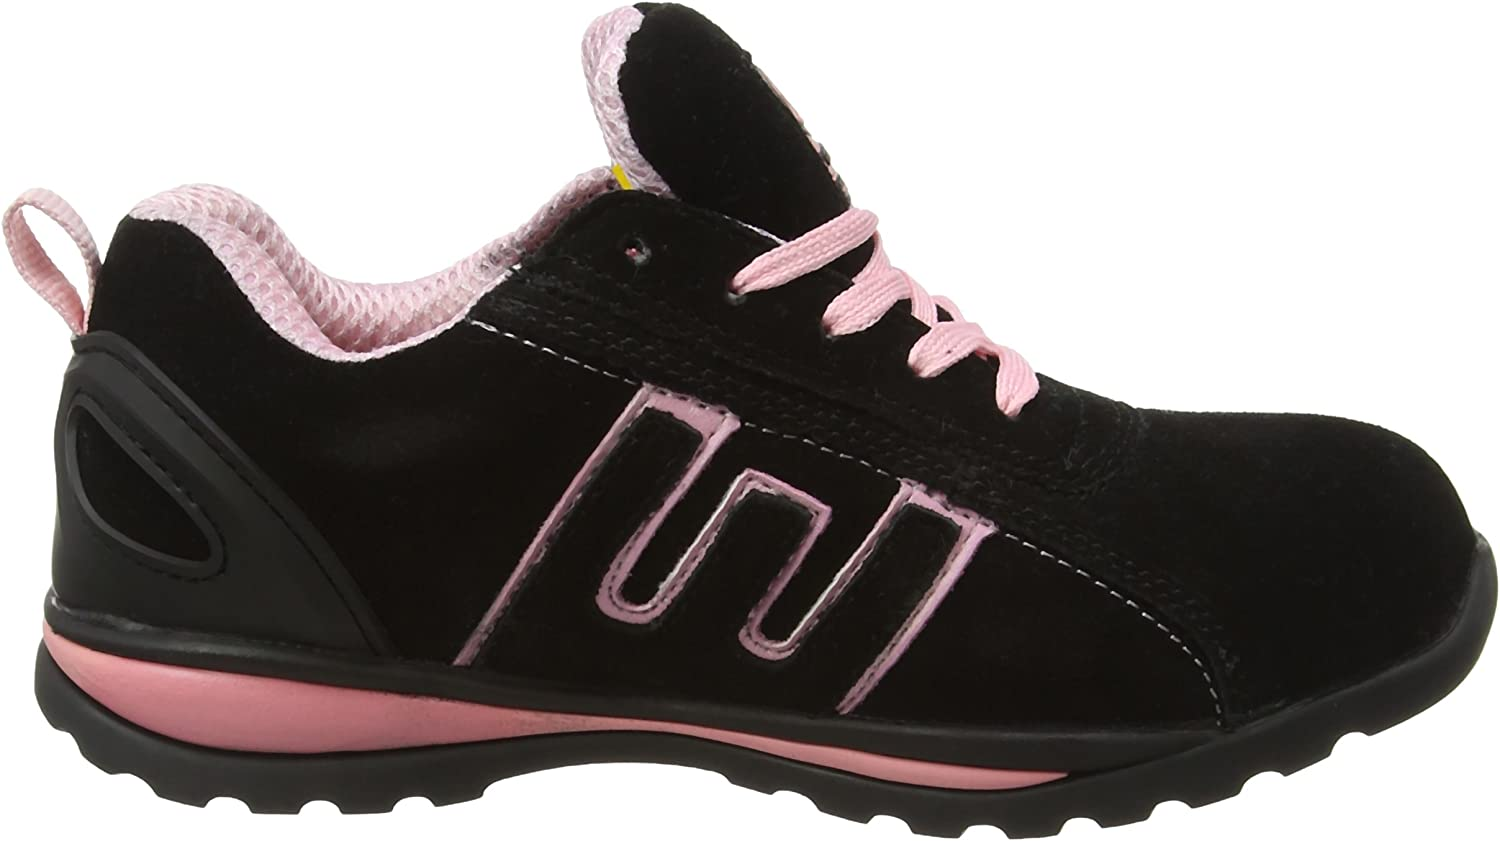 Groundwork New Ladies Safety Steel Toe Cap Ankle Trainers Boots